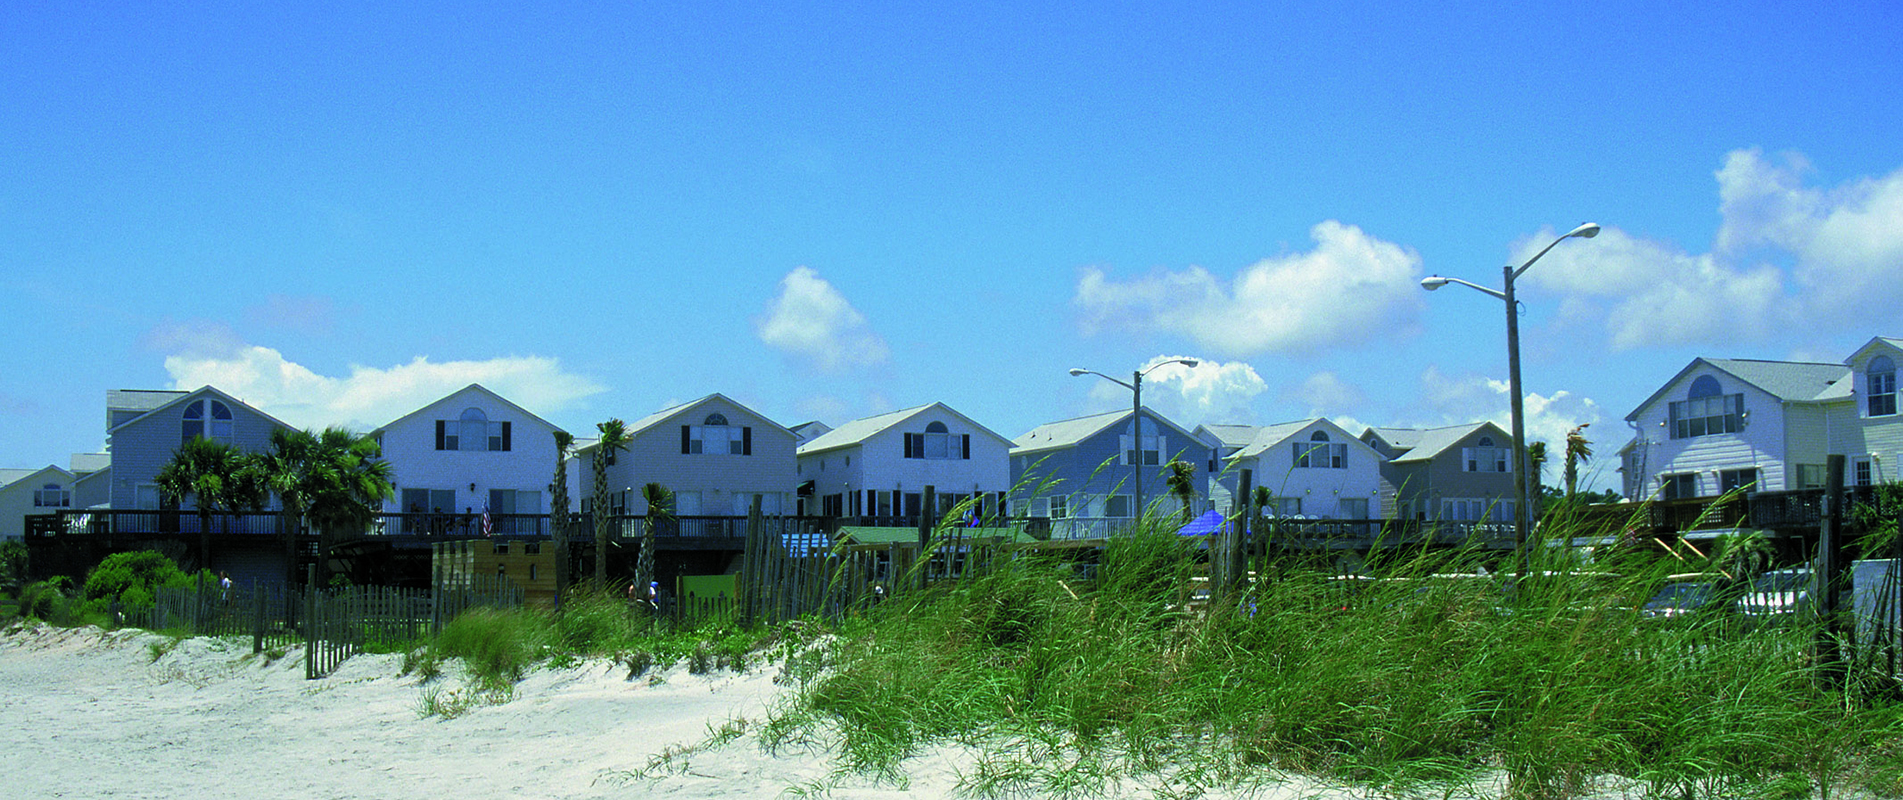 Campsites, Rentals and Beach Houses in Myrtle Beach SC